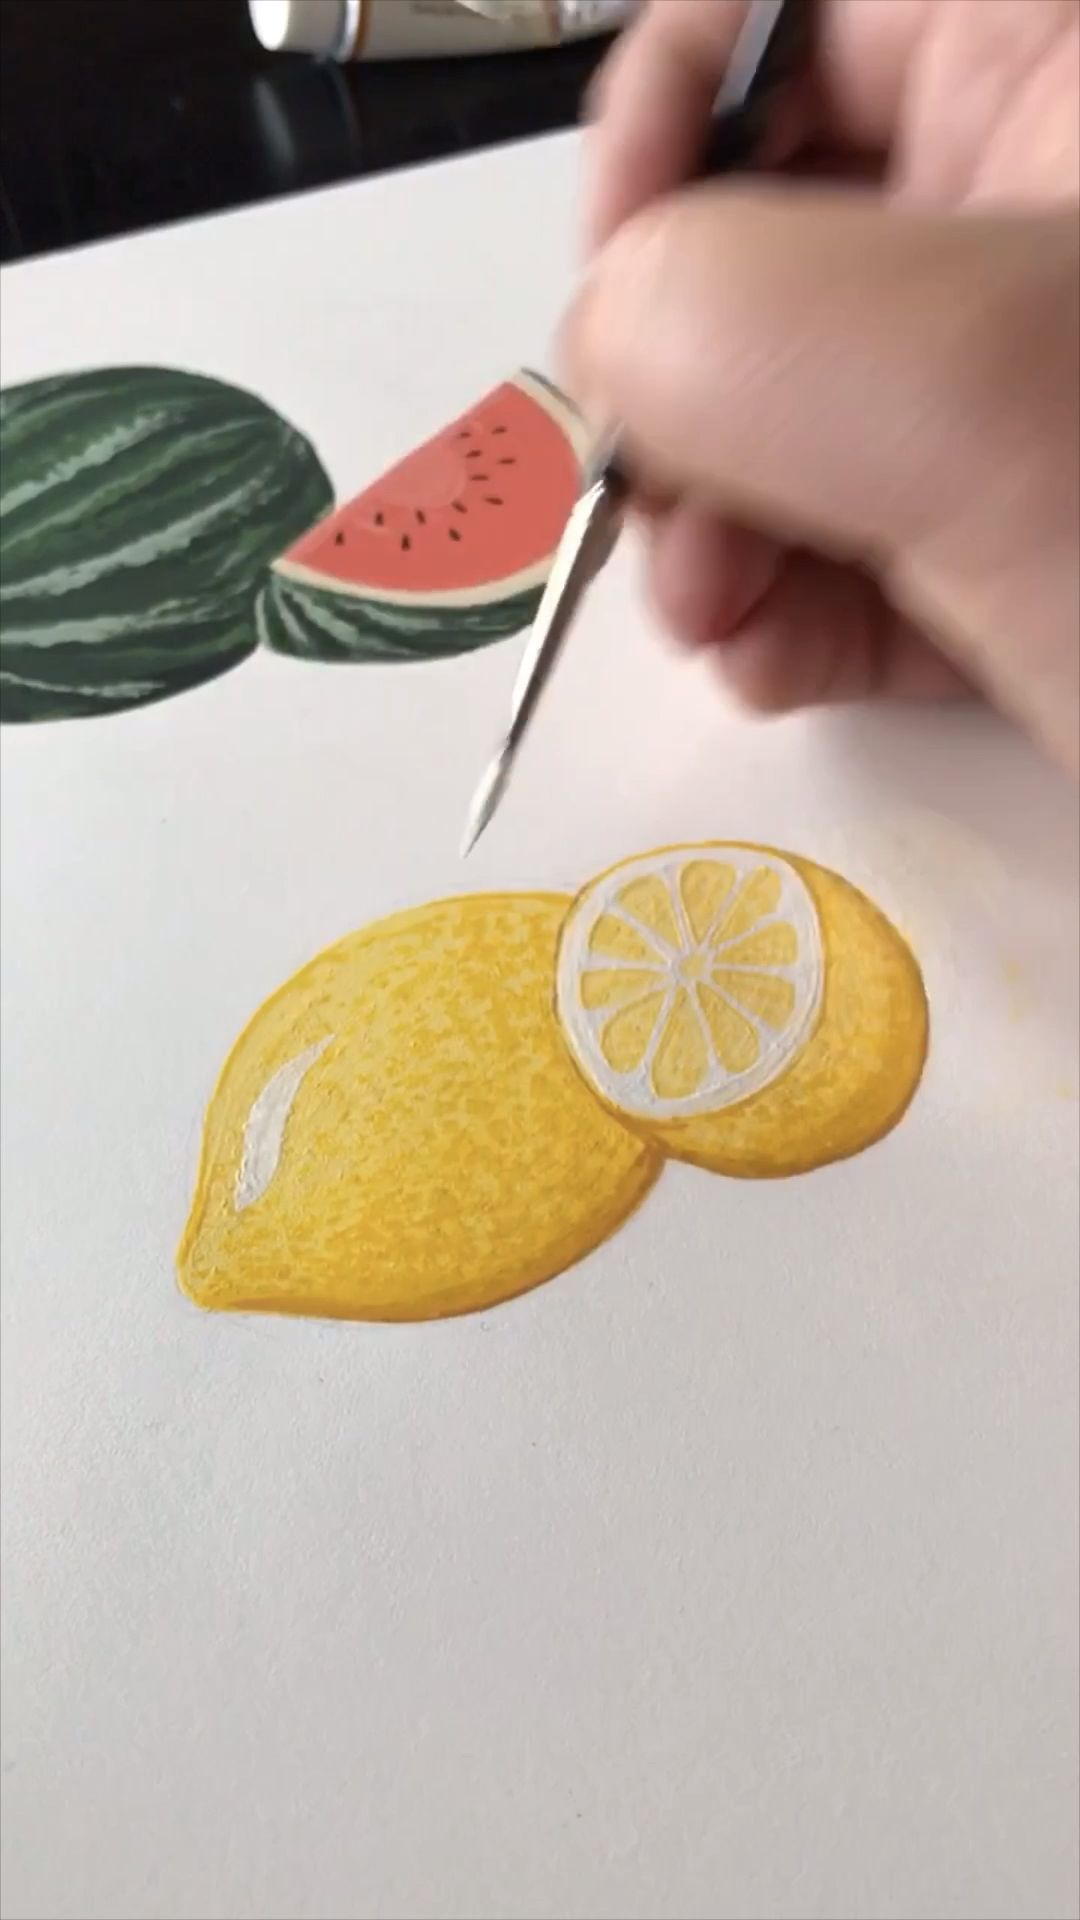 See more fun and satisfying videos on my YouTube. This is a video of me Gouache Painting a lemon. I also painted more lemons in my sketchbook. A great video to follow along with me or relax to relieve some anxiety!